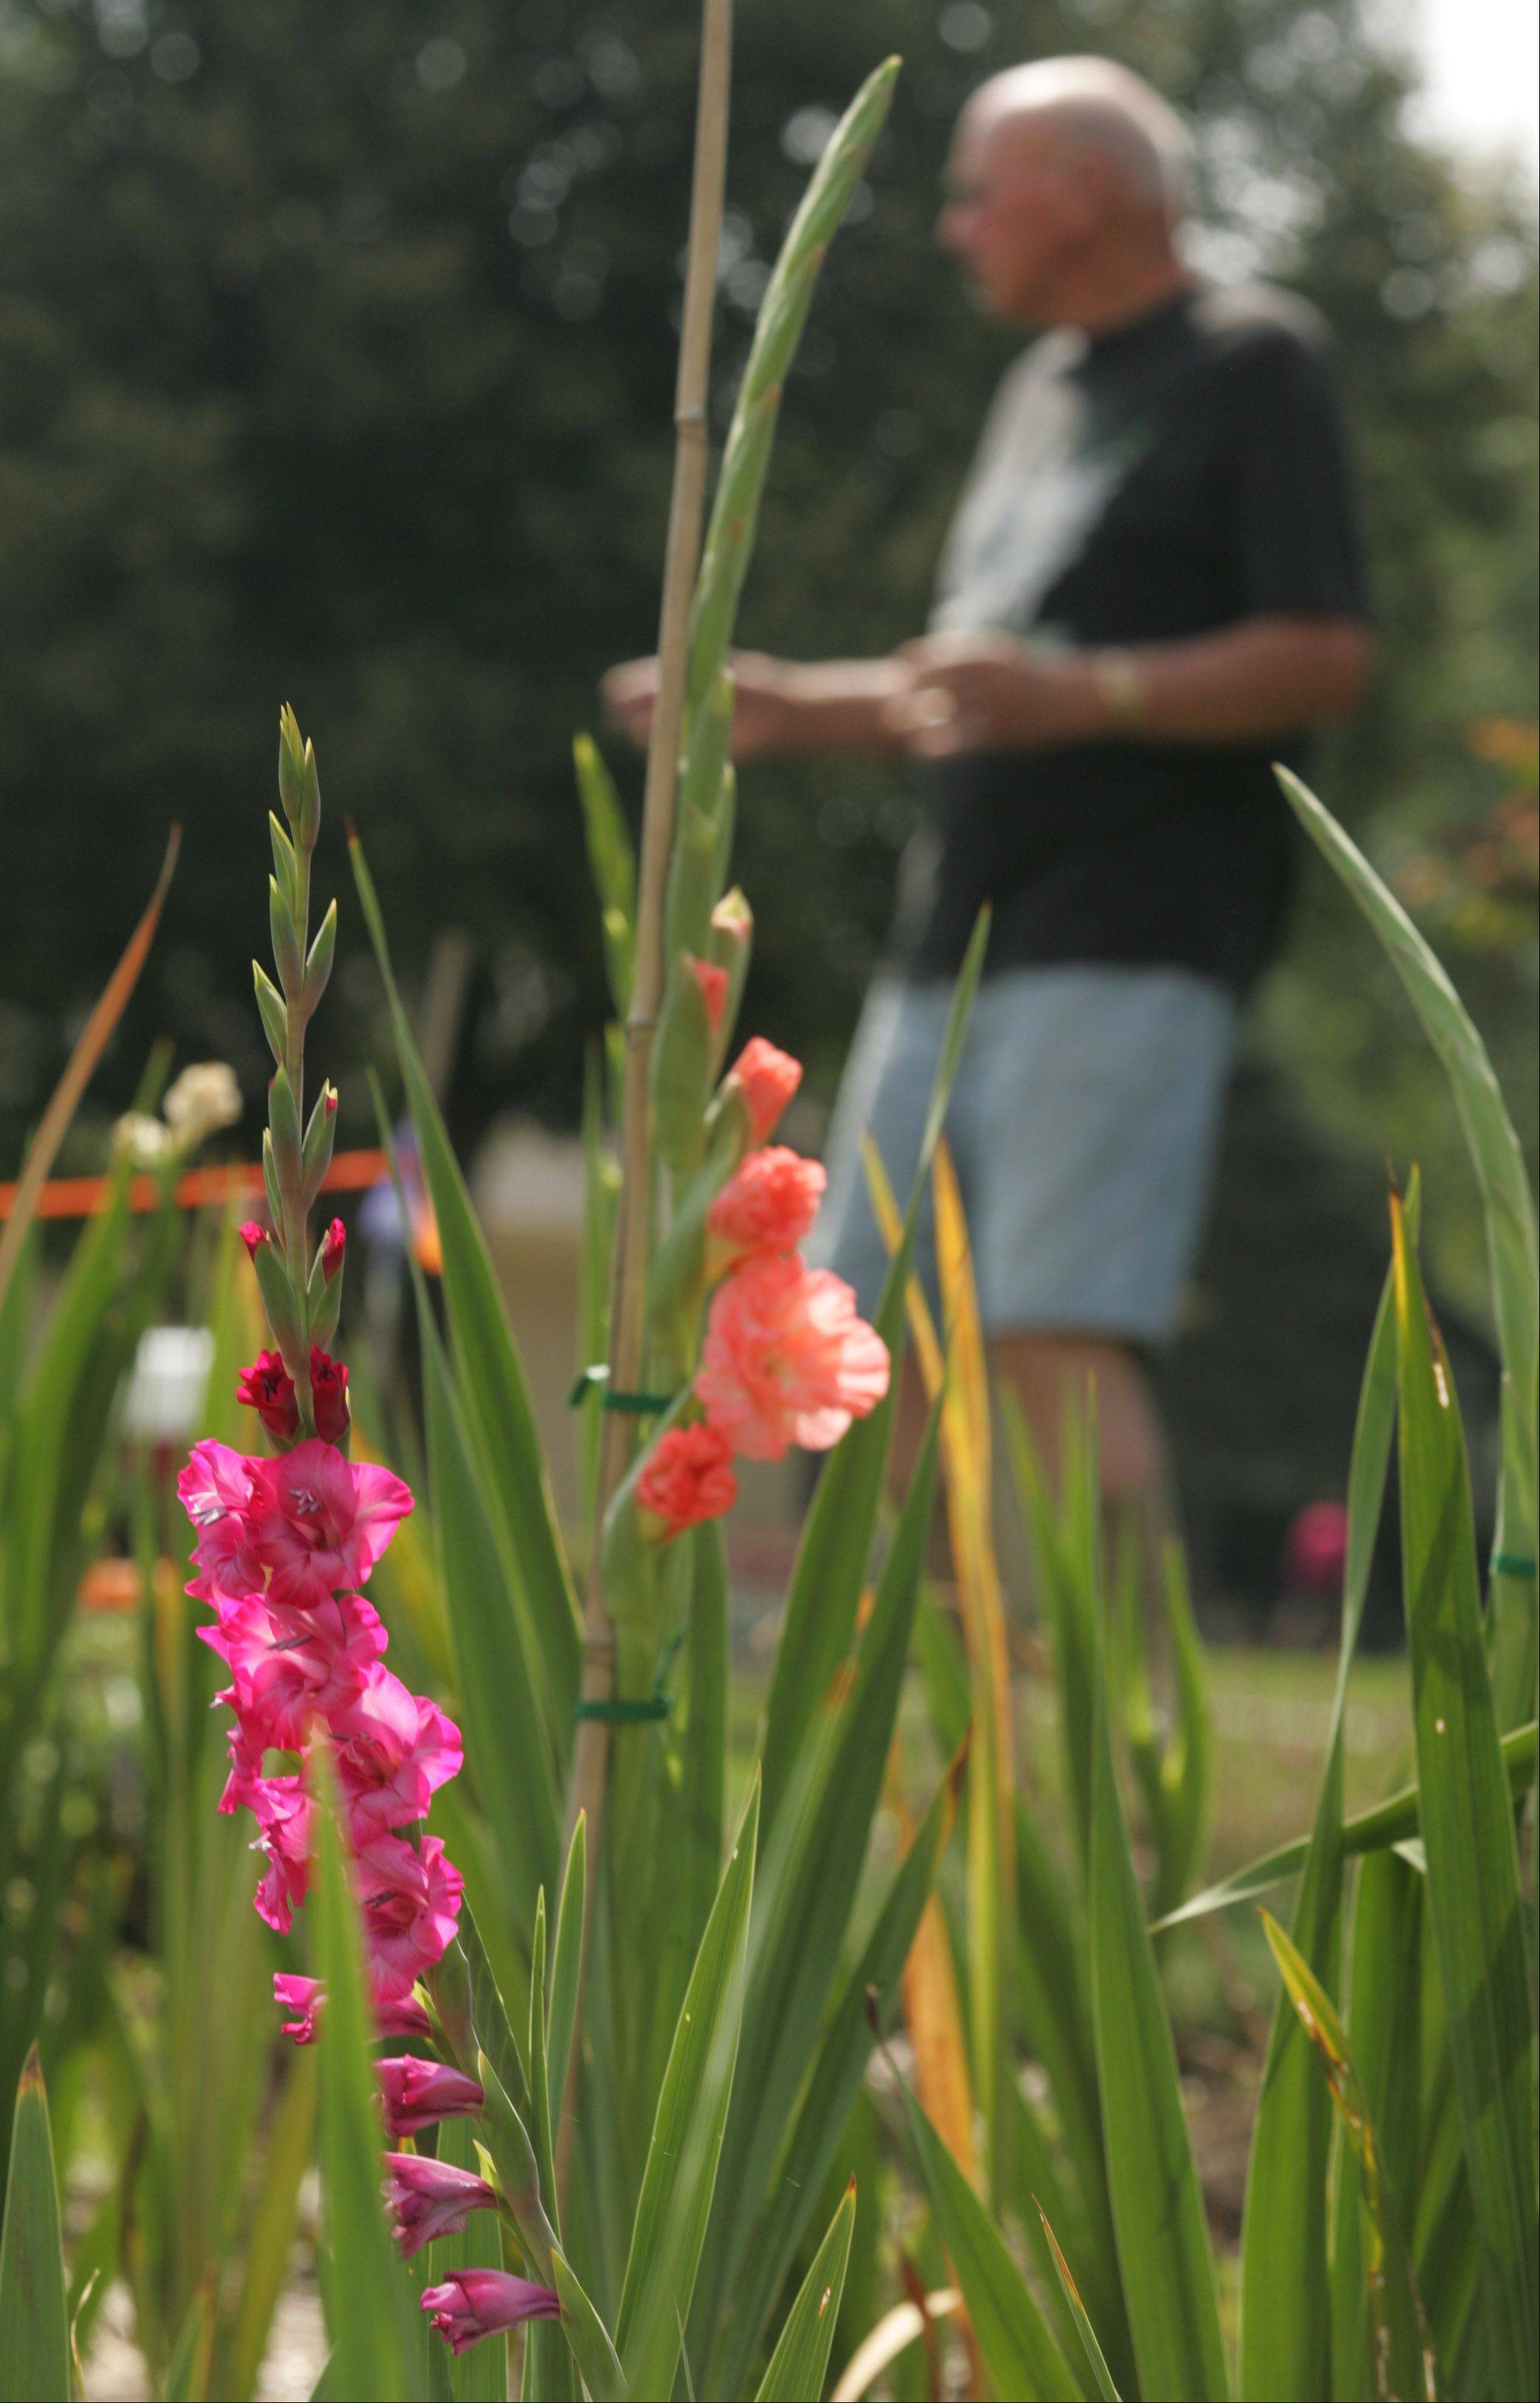 Ed Frederick of Elgin has several large beds where he grows his gladioluses, in addition to some vegetables and herbs.